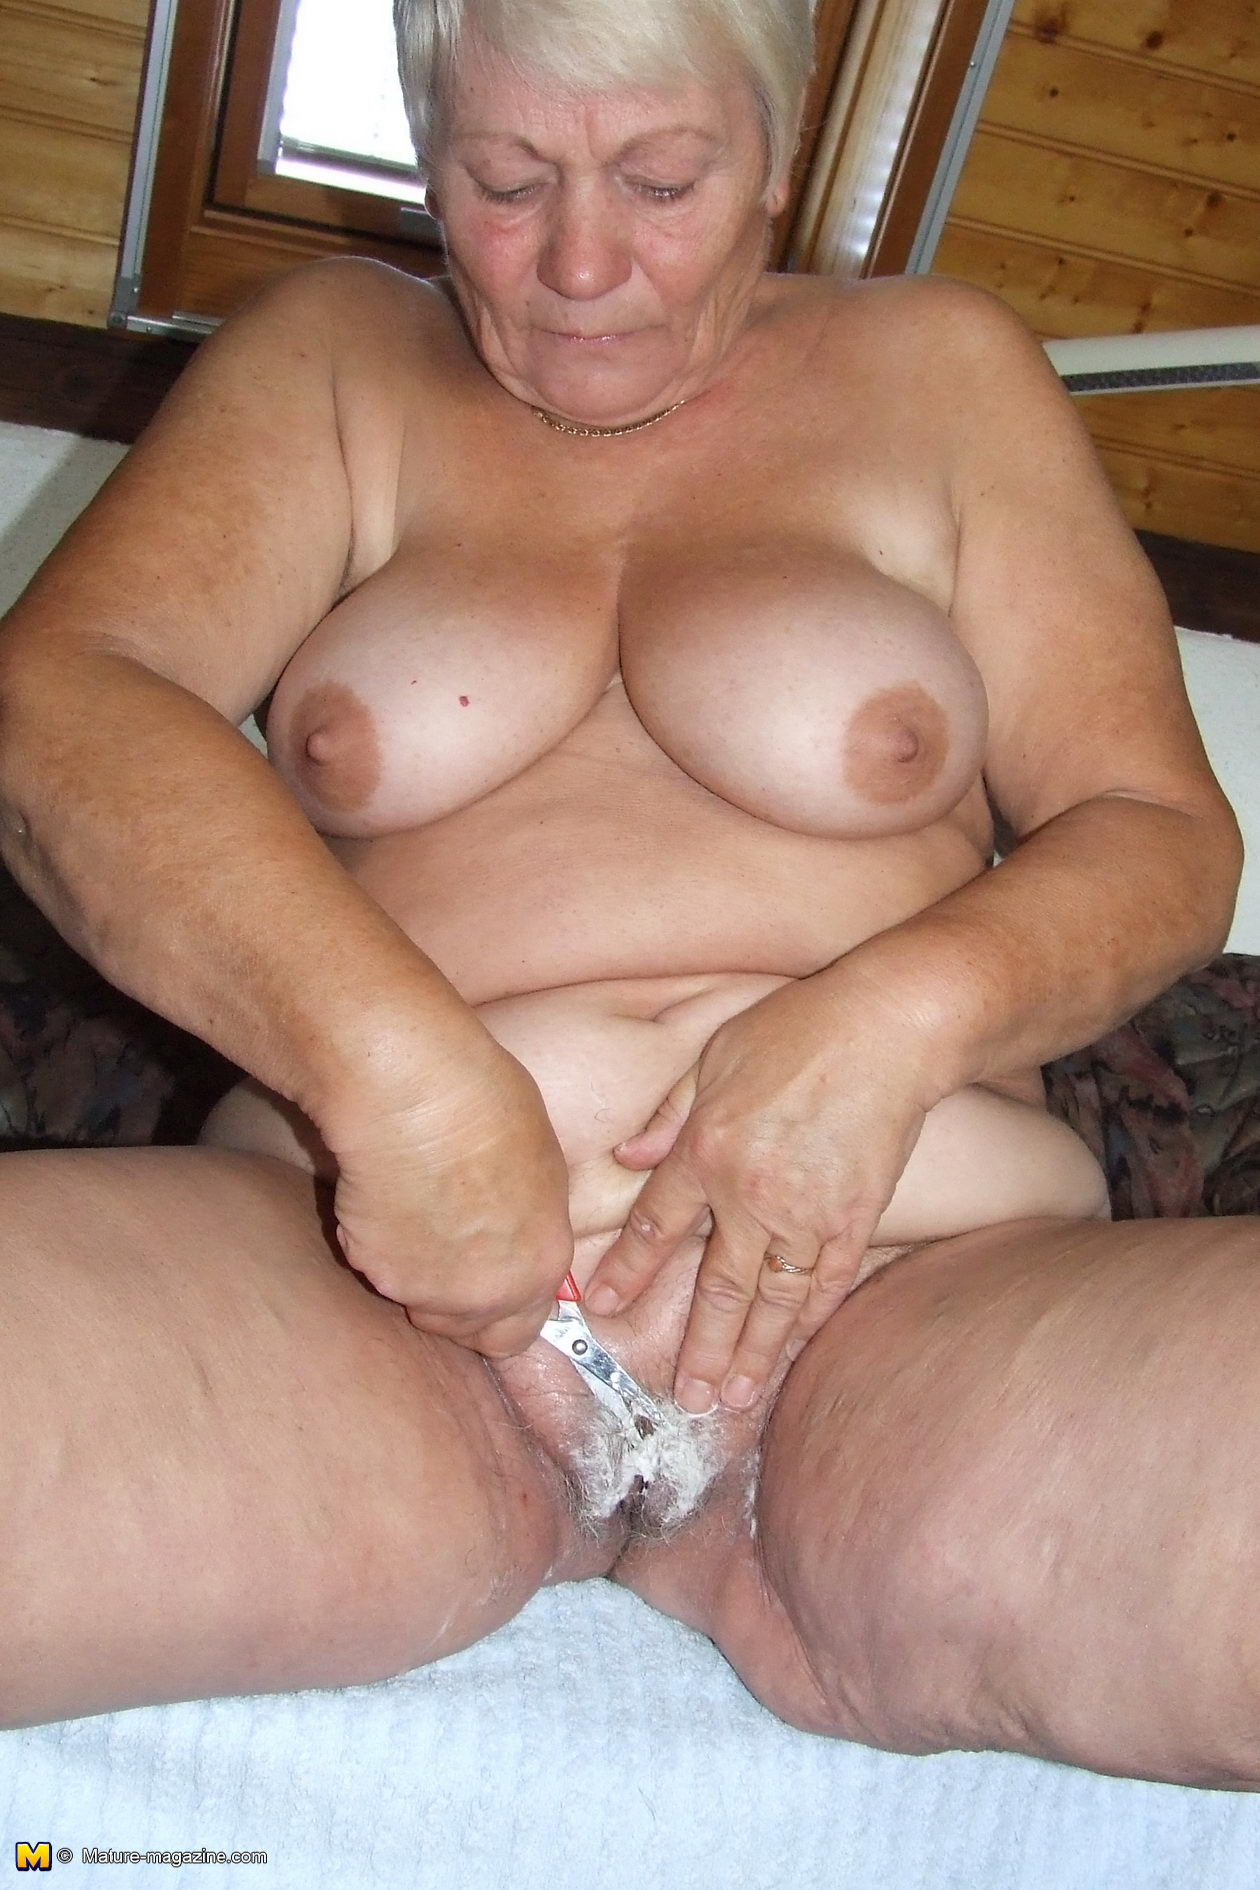 amateur older lady caught shaving her pussy - grannypornpics